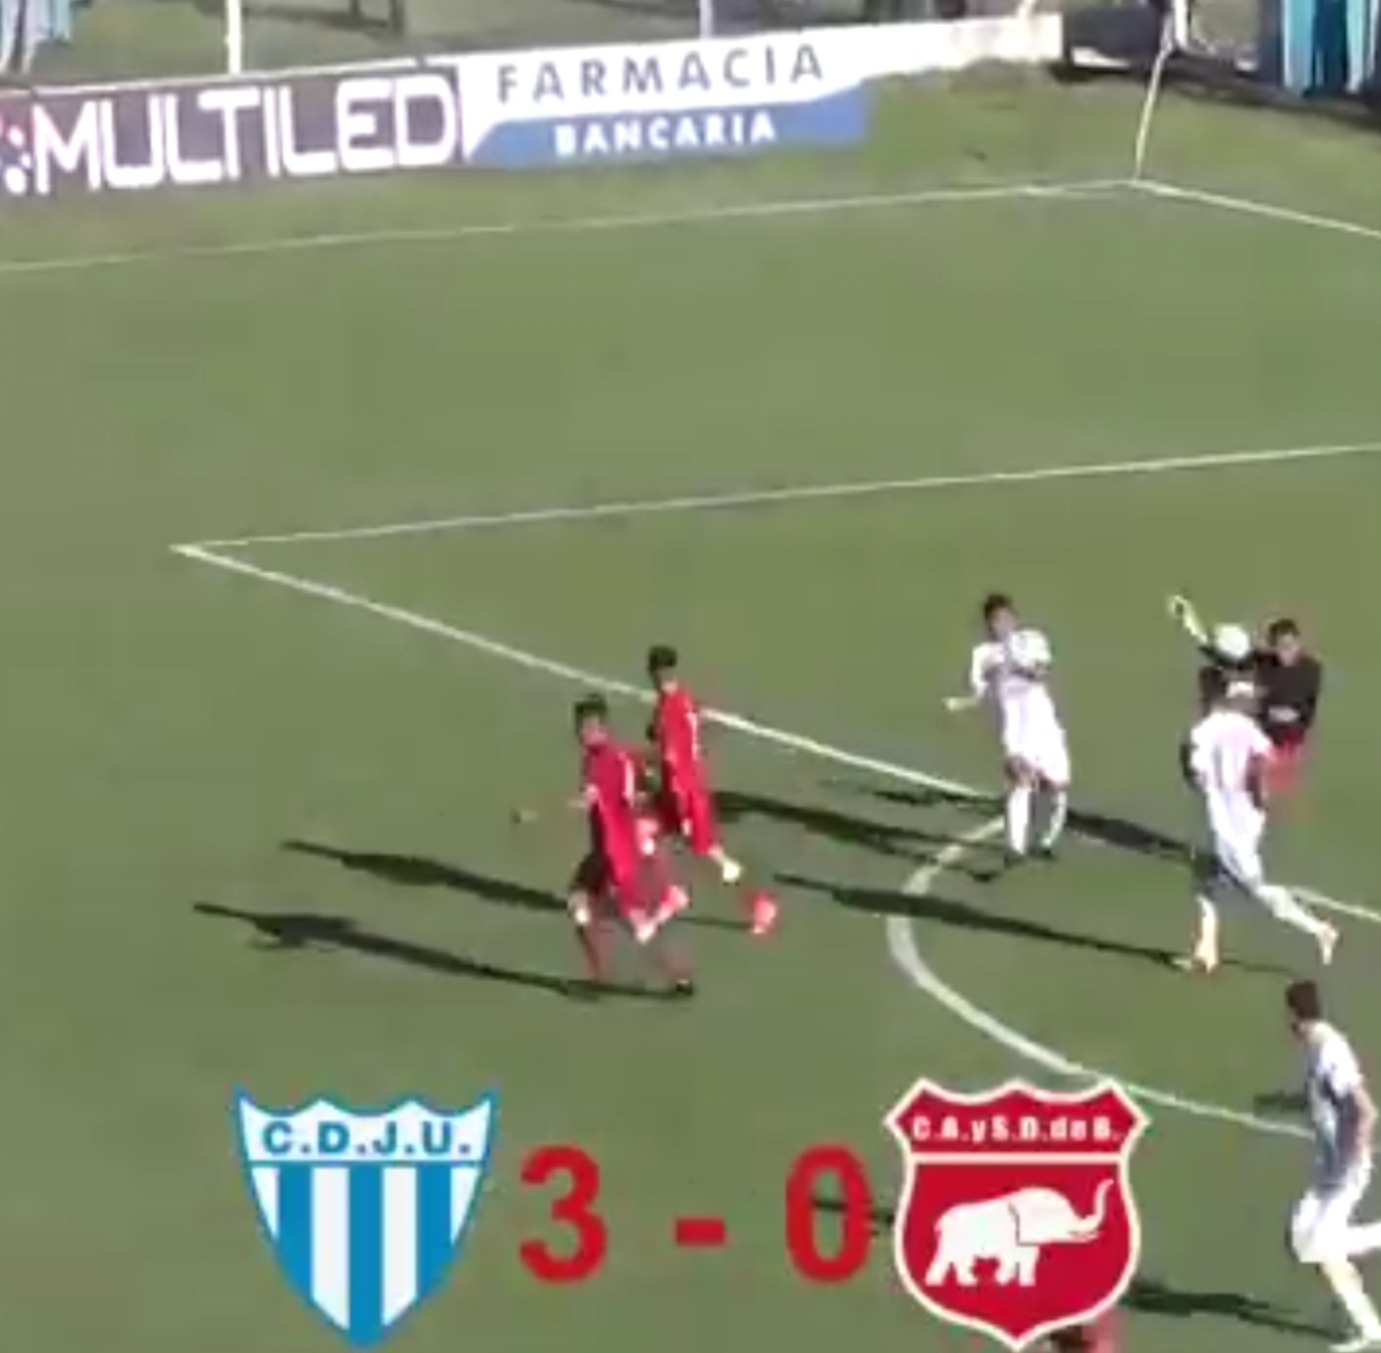 a-dog-made-a-remarkable-save-during-this-match-%f0%9f%98%82